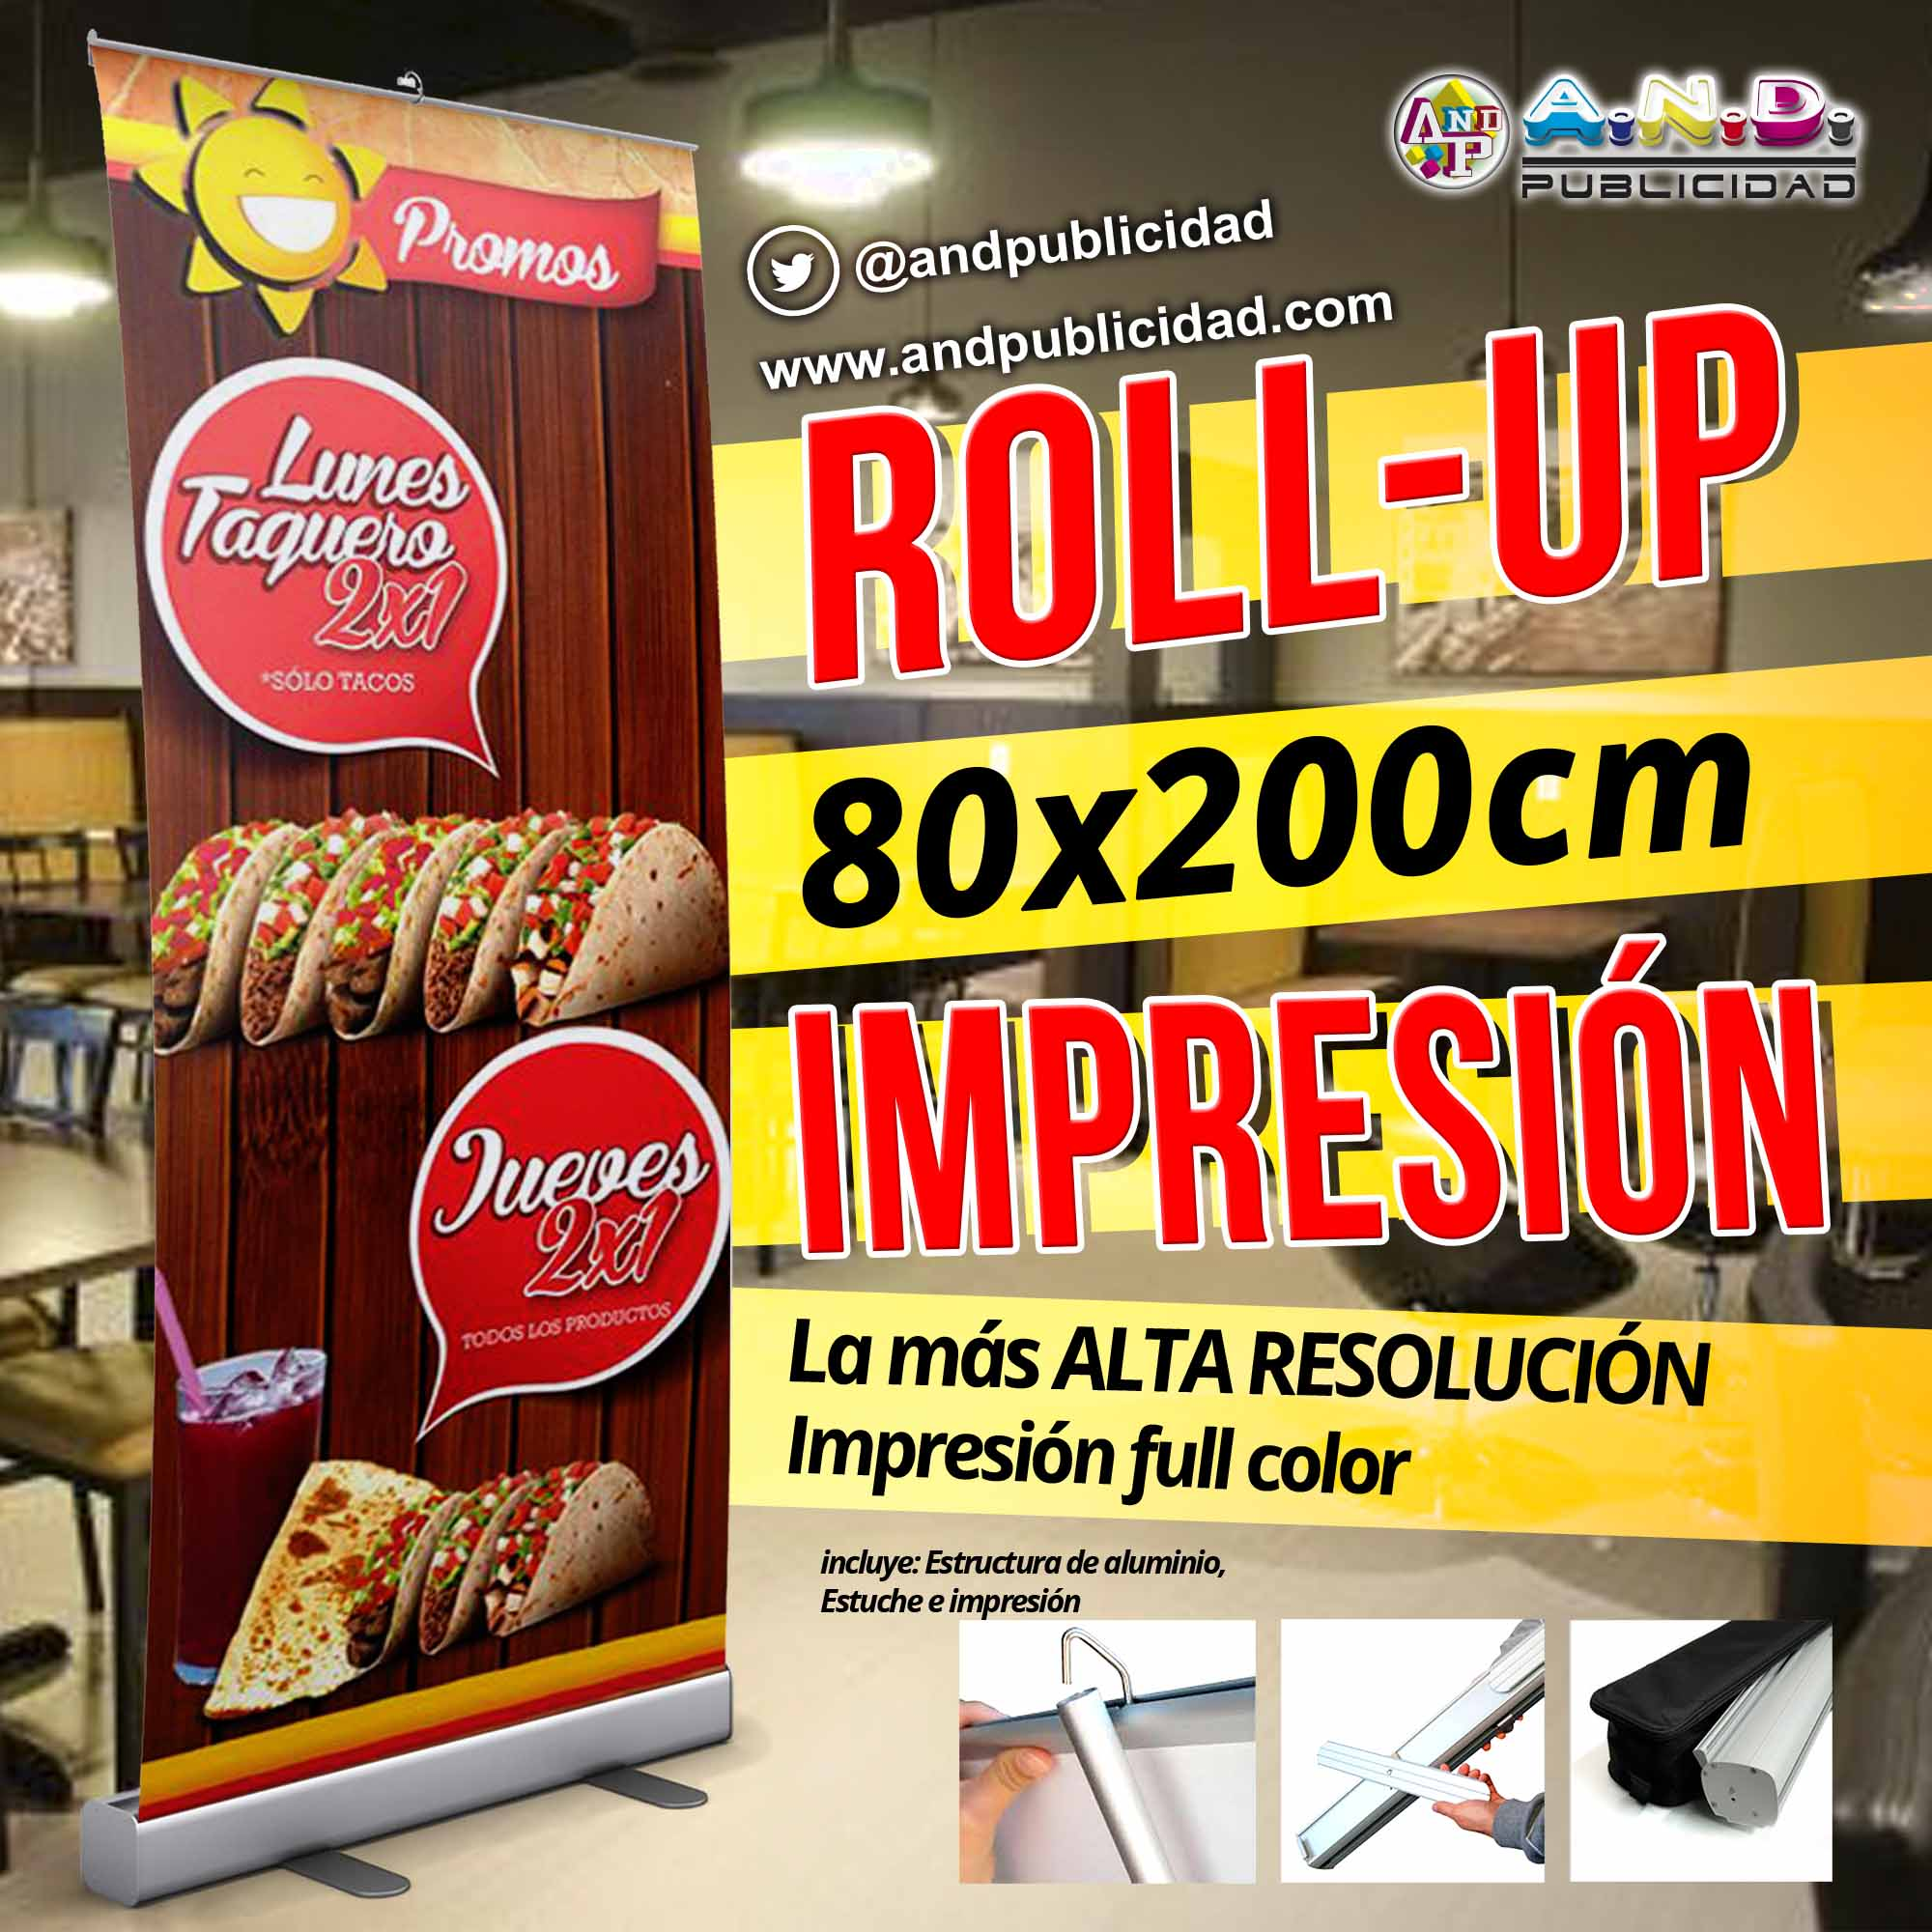 Roll Up 8 0x 200